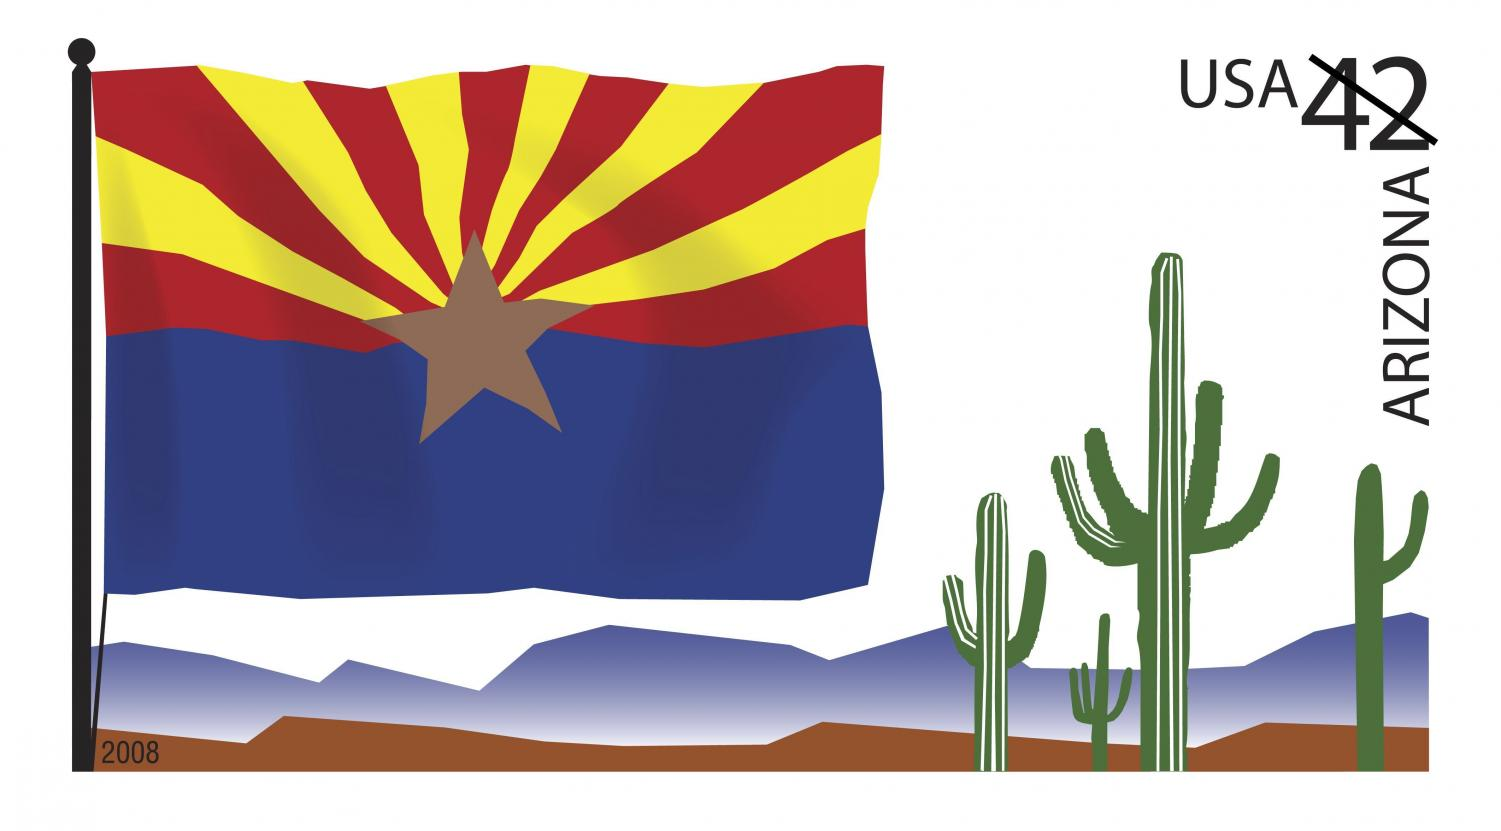 This is a picture of the Arizona flag with cacti and mountains in the background.